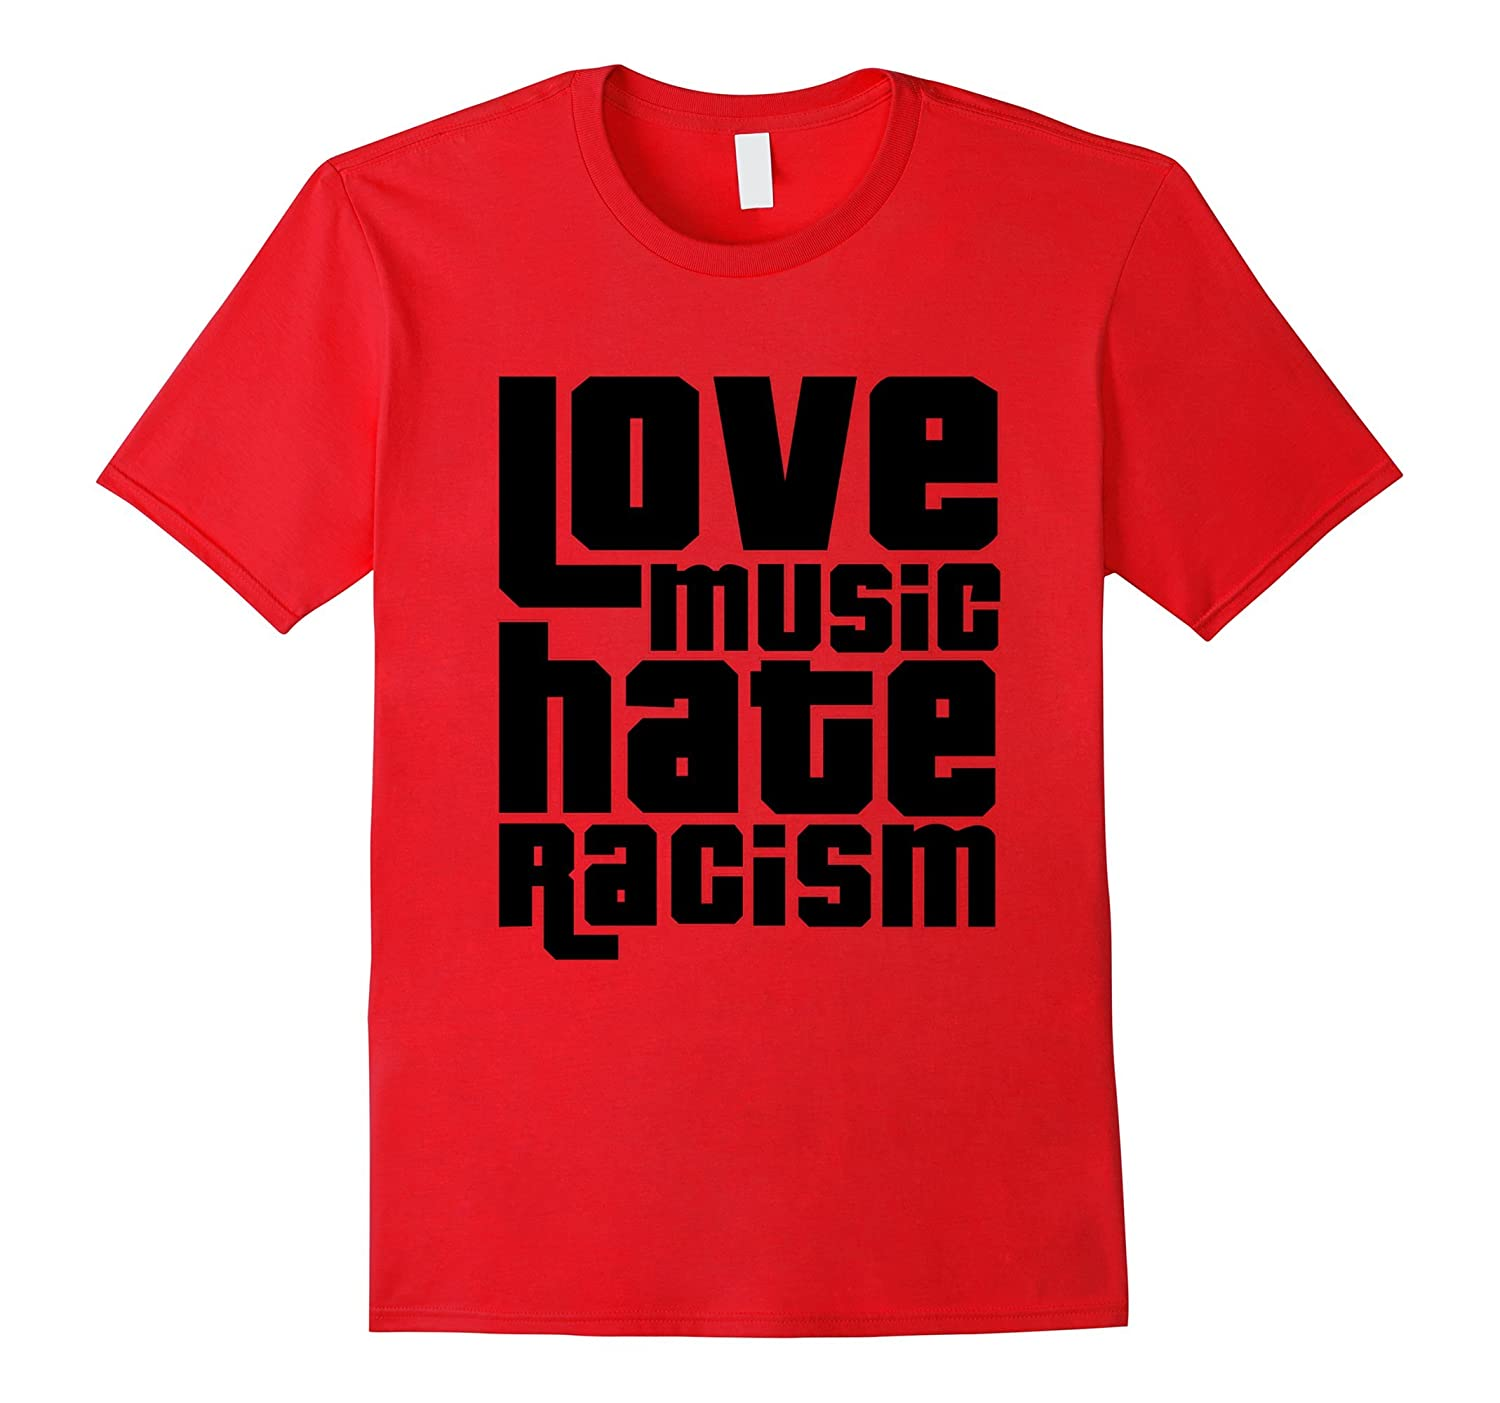 Love music hate racism t shirt-TD